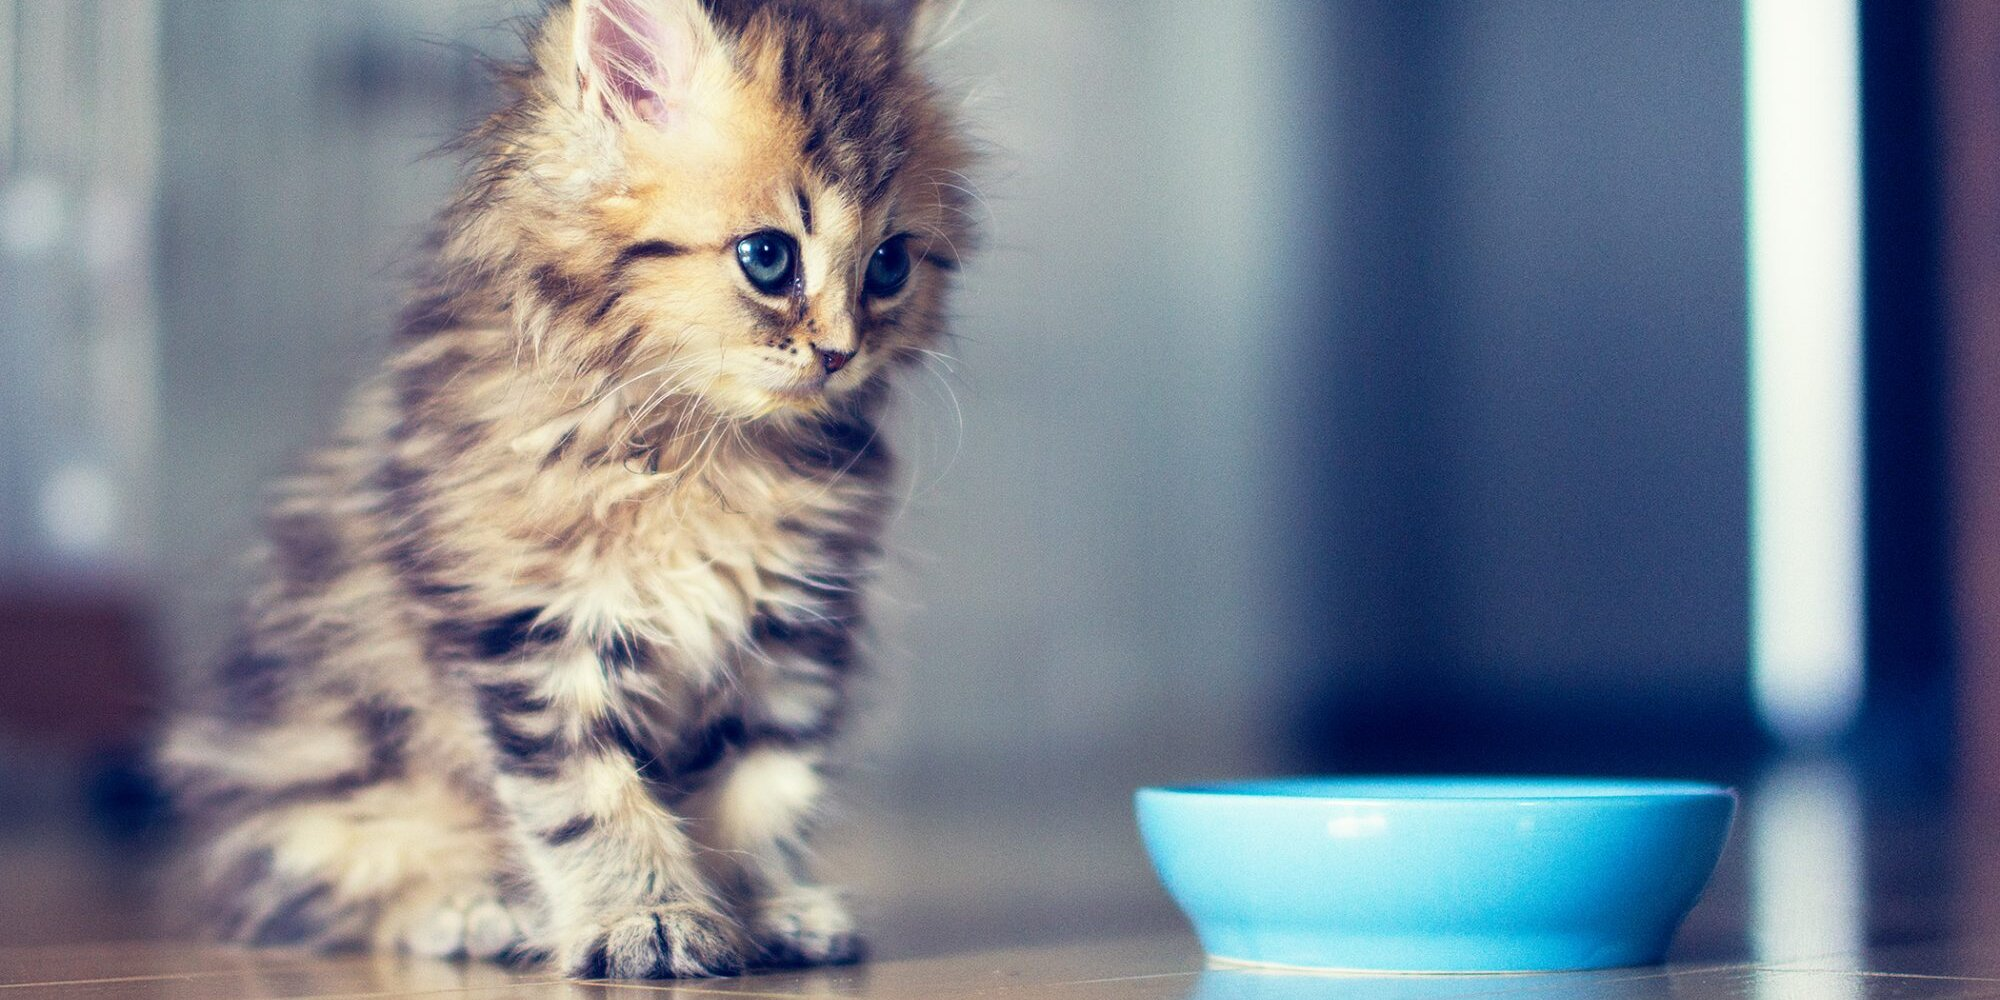 Milk, Formula, or Food? Here's What To Feed Your Kitten During the First Year